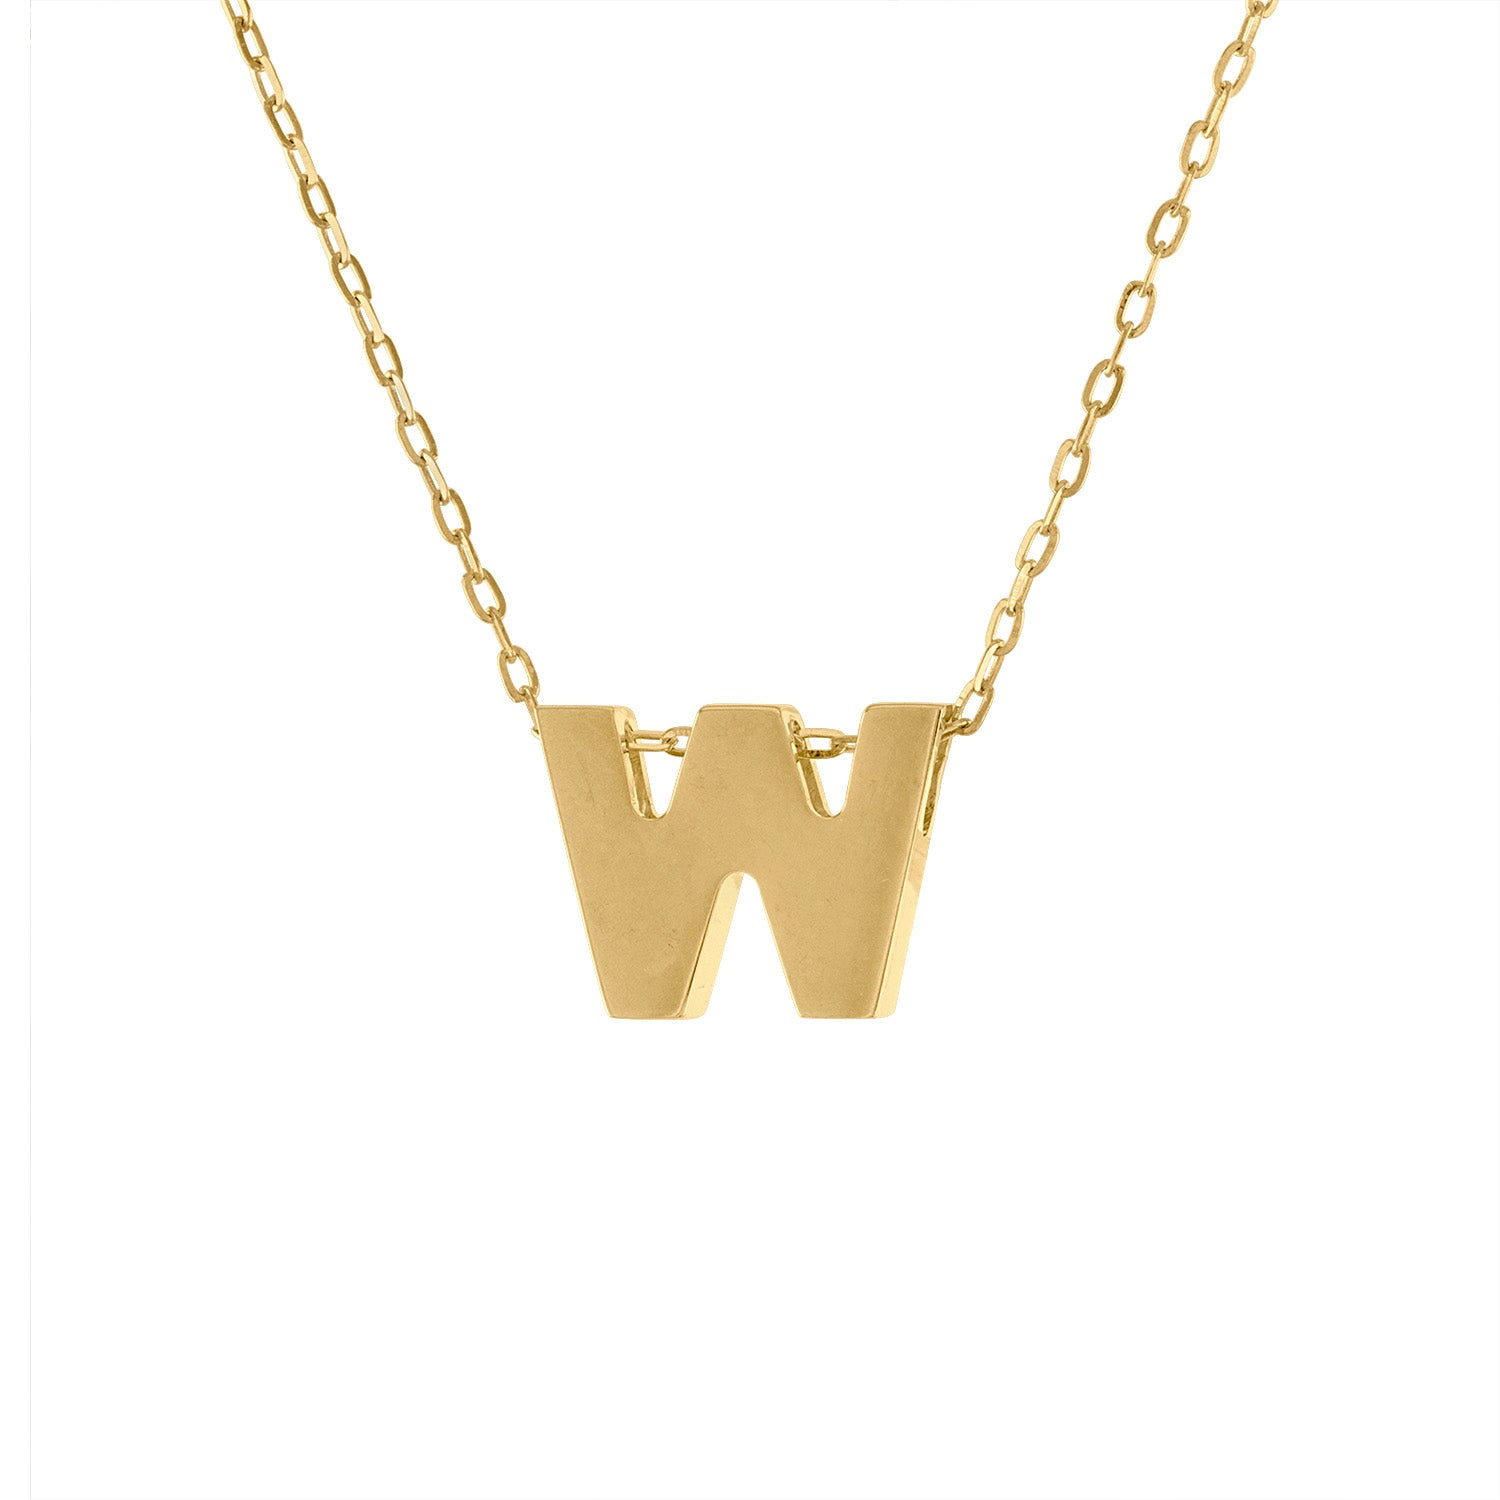 14k Yellow Gold plain initial W necklace